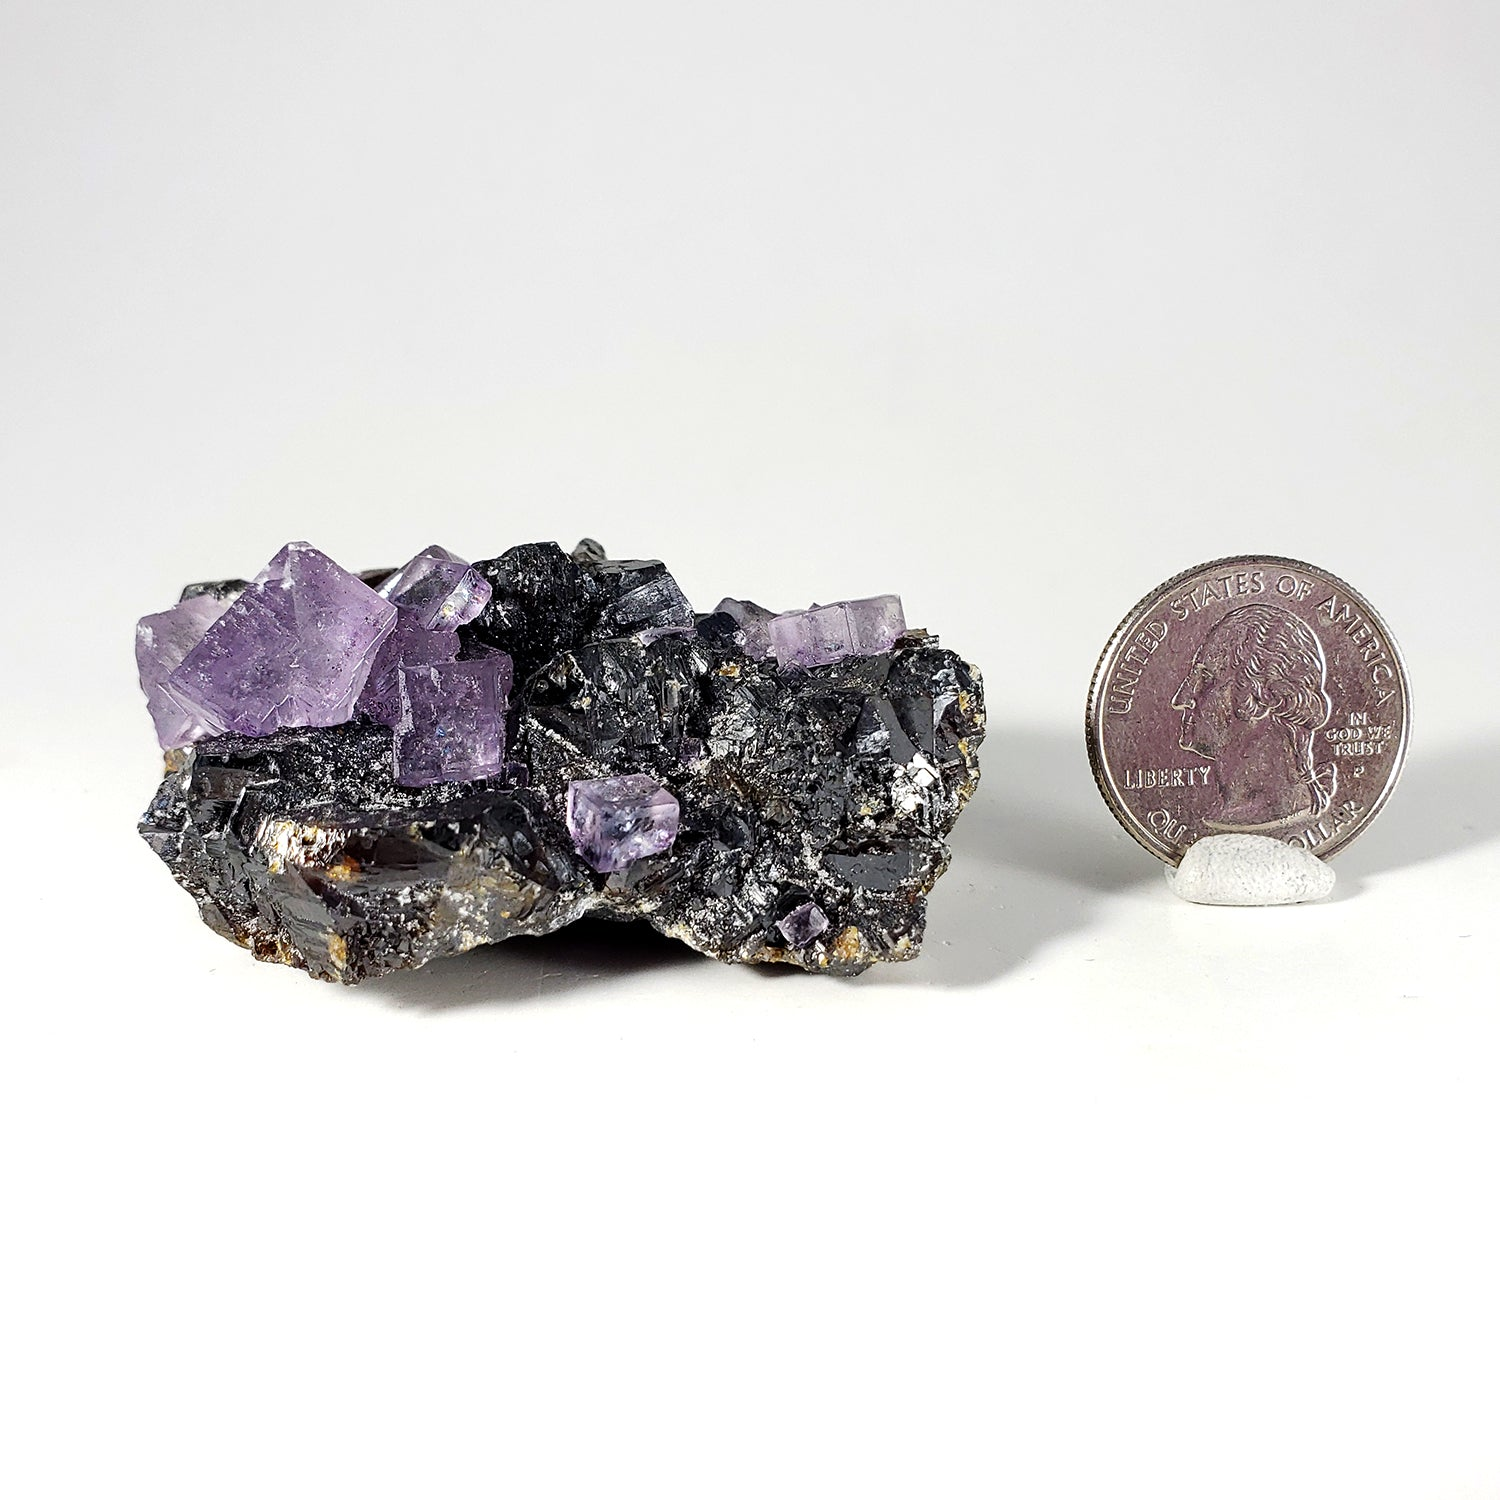 Fluorite on Sphalerite from Elmwood Mine, Carthage, Tennessee